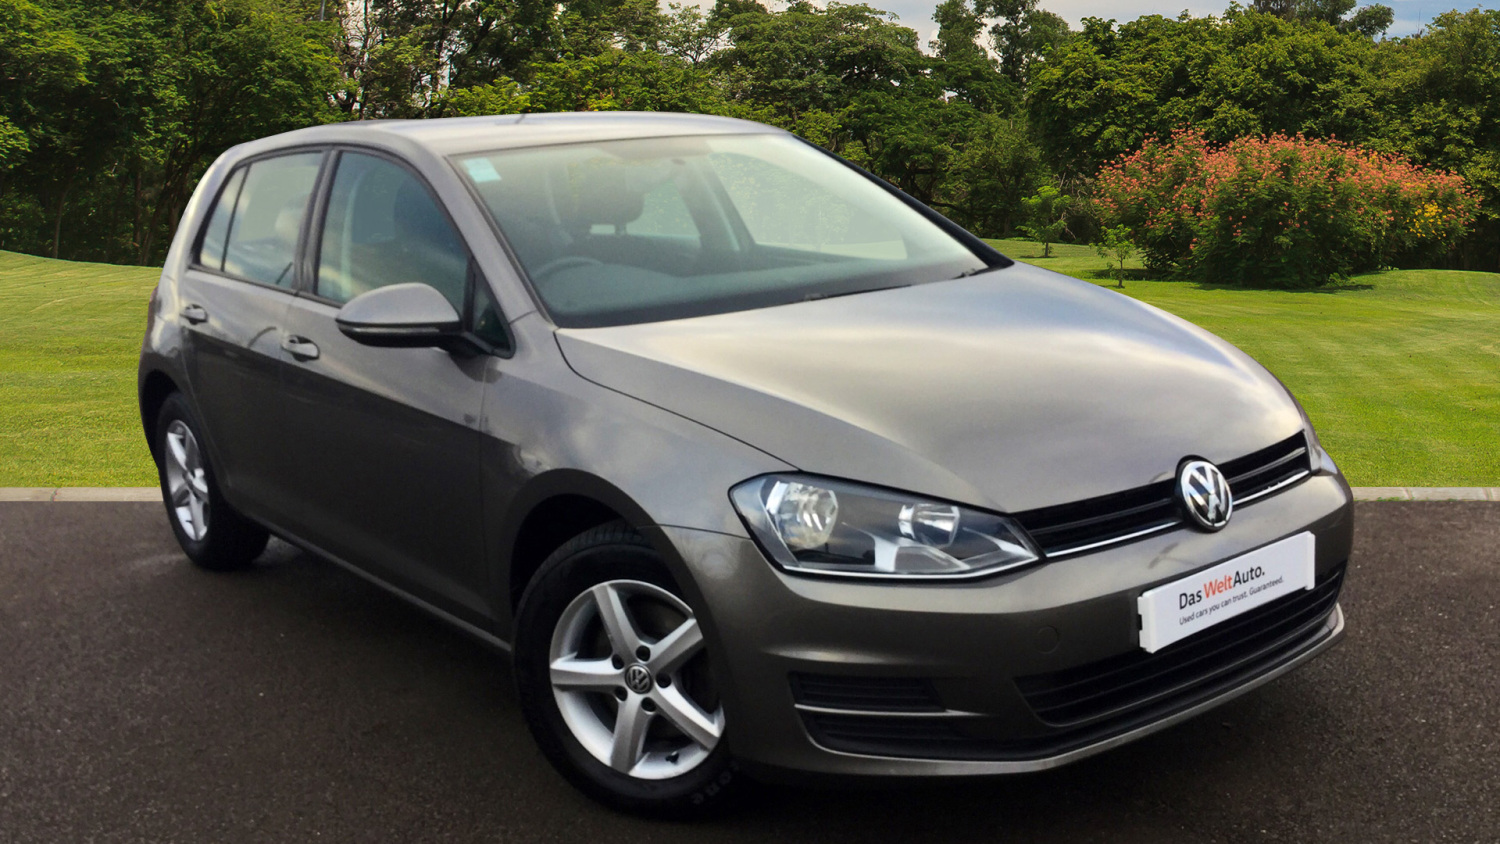 used volkswagen golf 1 4 tsi s 5dr petrol hatchback for. Black Bedroom Furniture Sets. Home Design Ideas